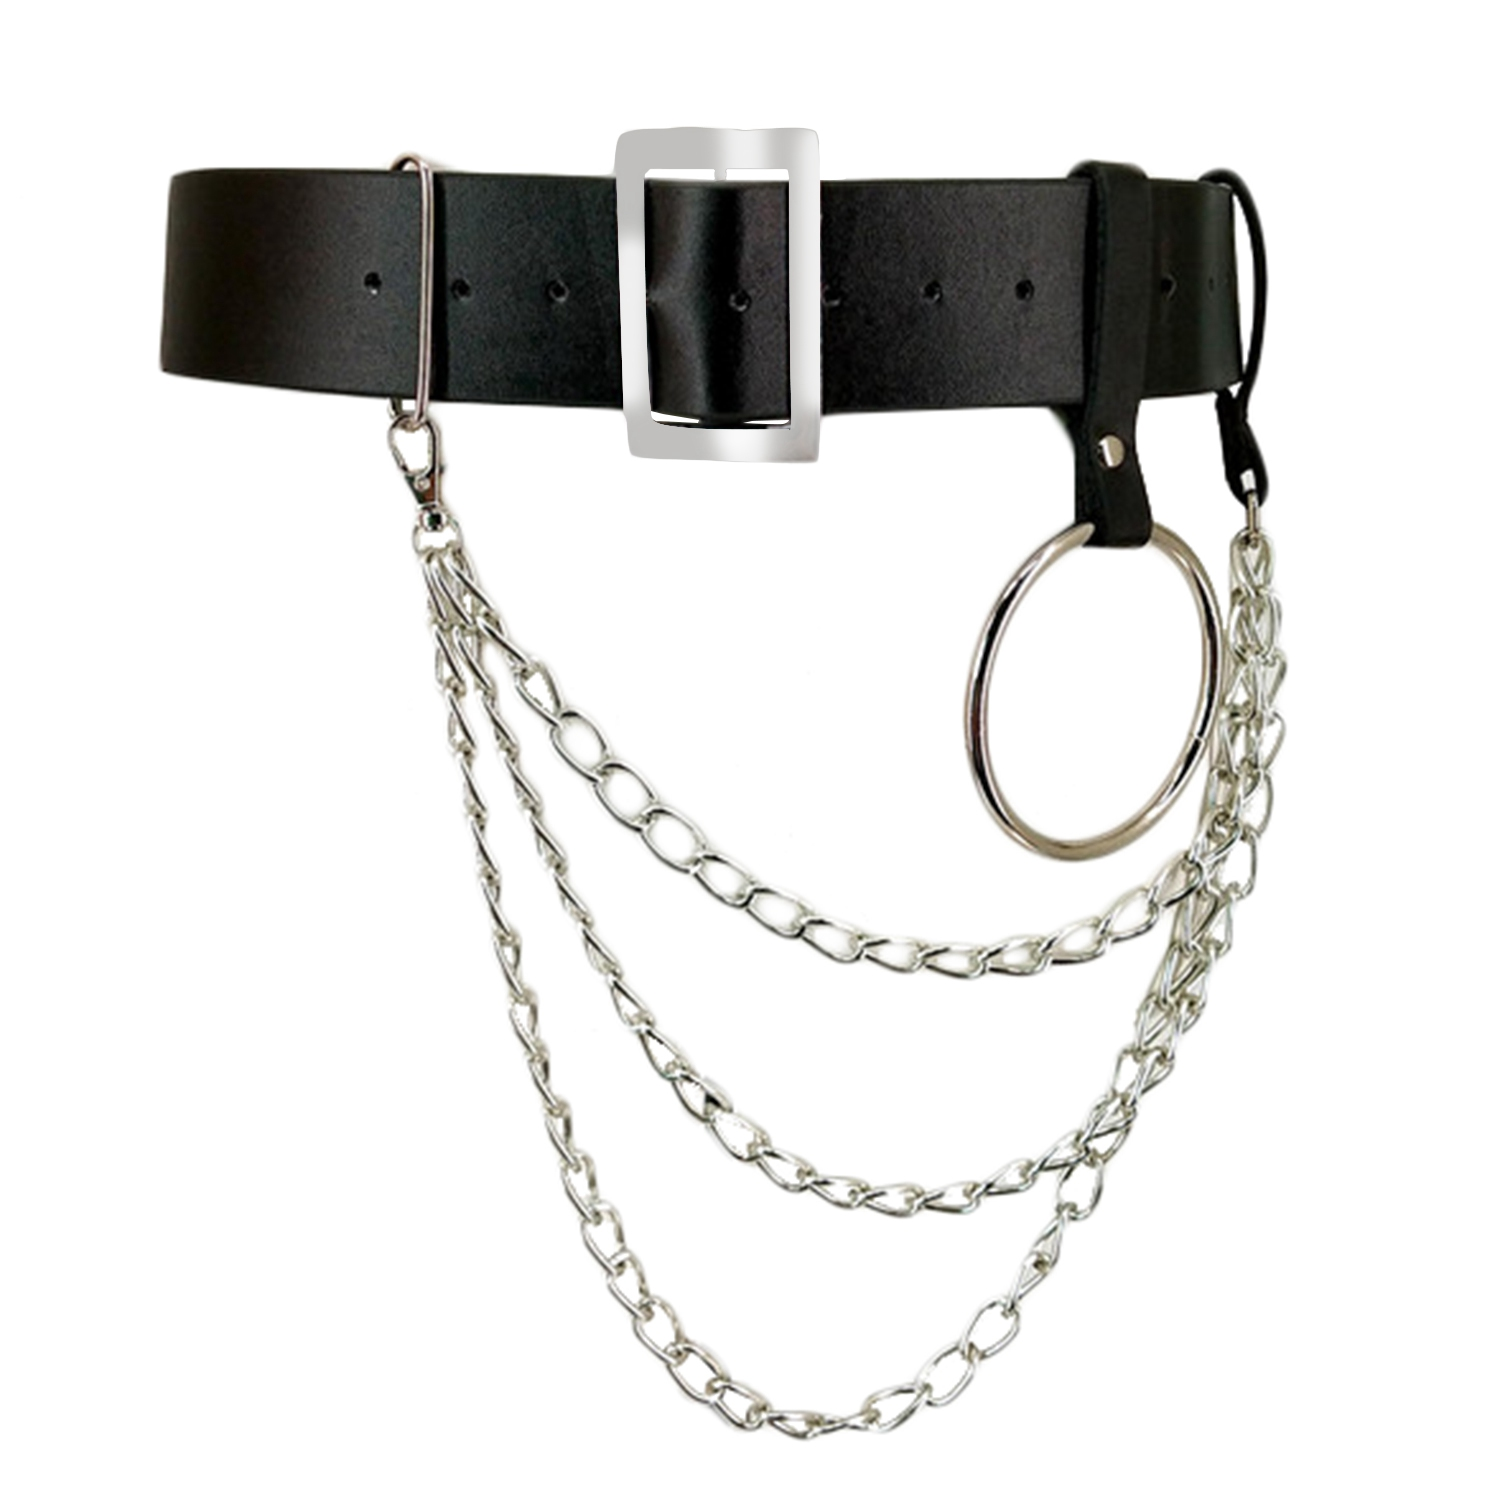 Women Pu Leather Harness Body   Belts   With Chain Waist Bondage Garters Punk Adjustable Suspender Straps